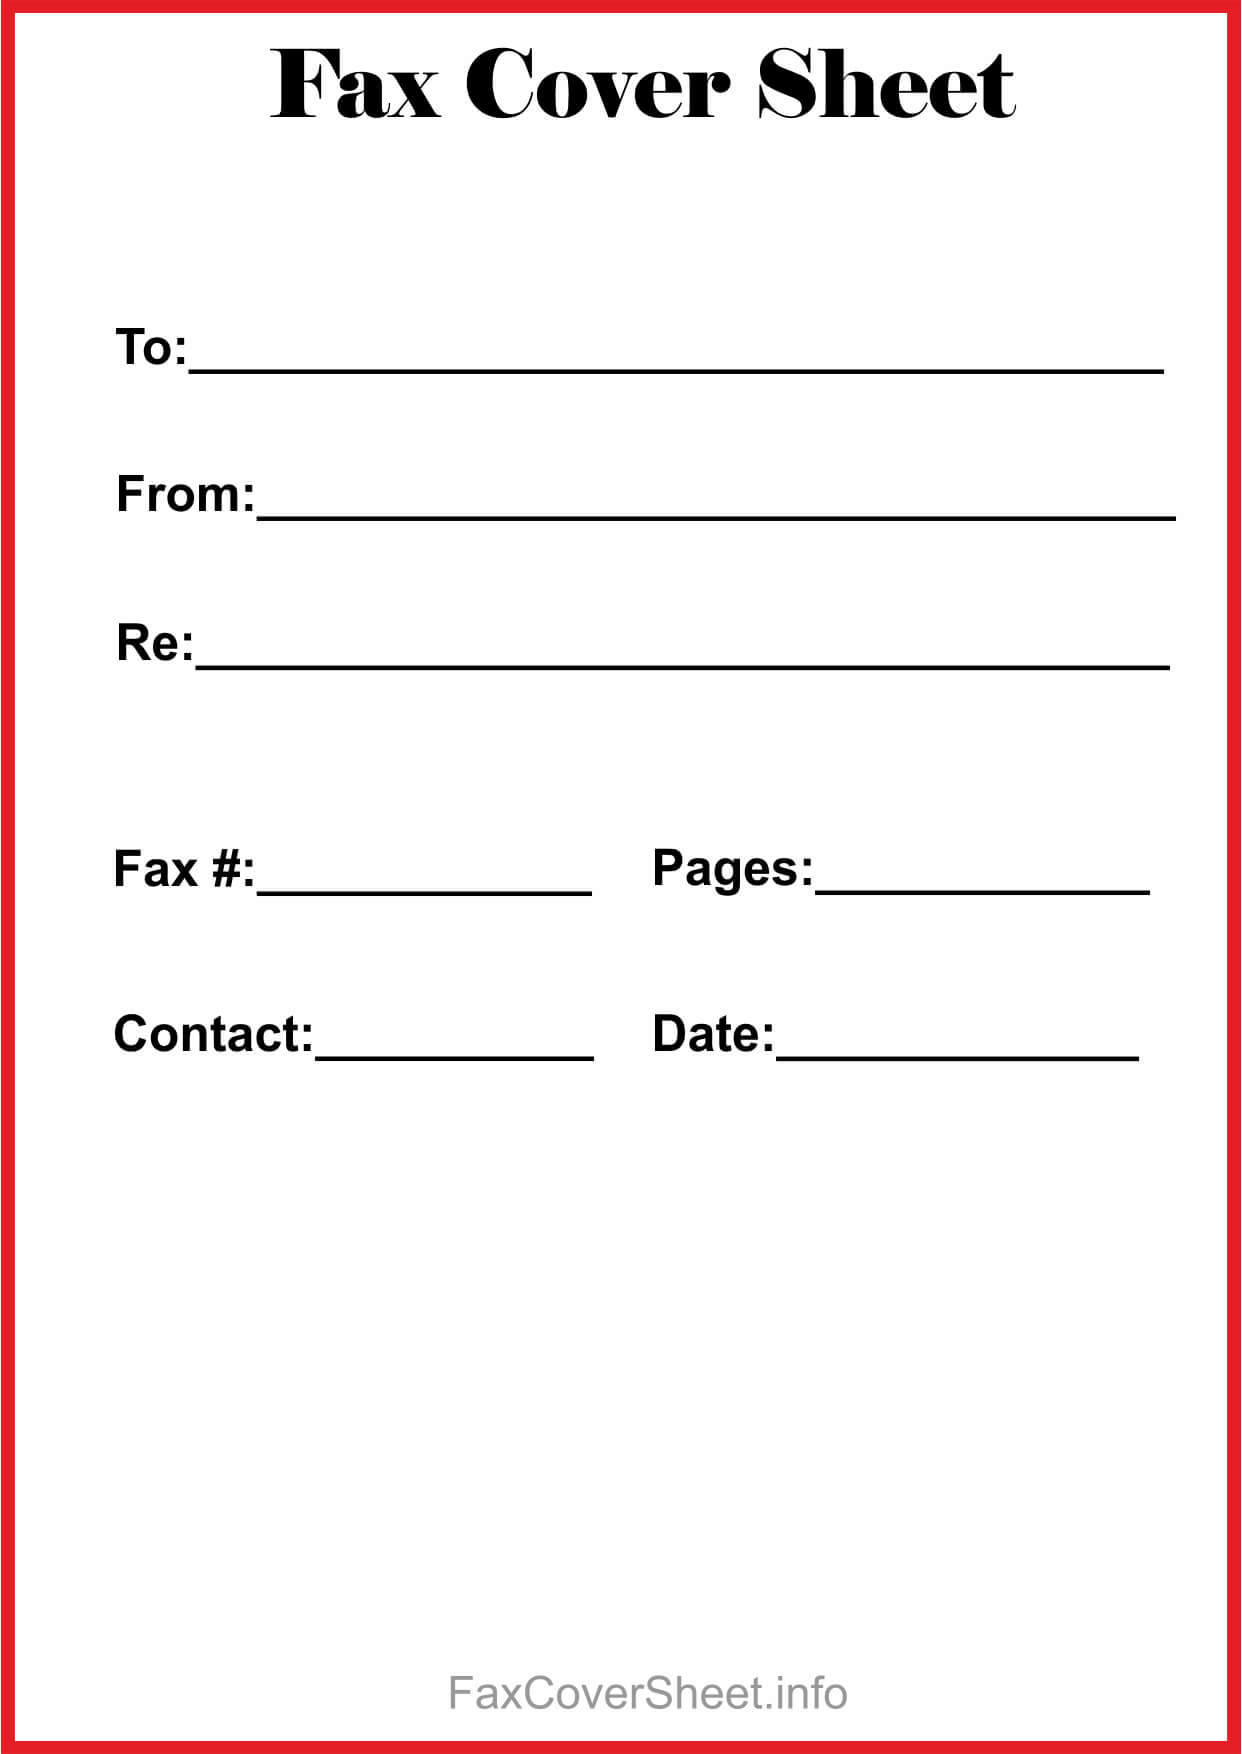 How To Find Blank Fax Cover Sheet Within Microsoft Word within Fax Template Word 2010